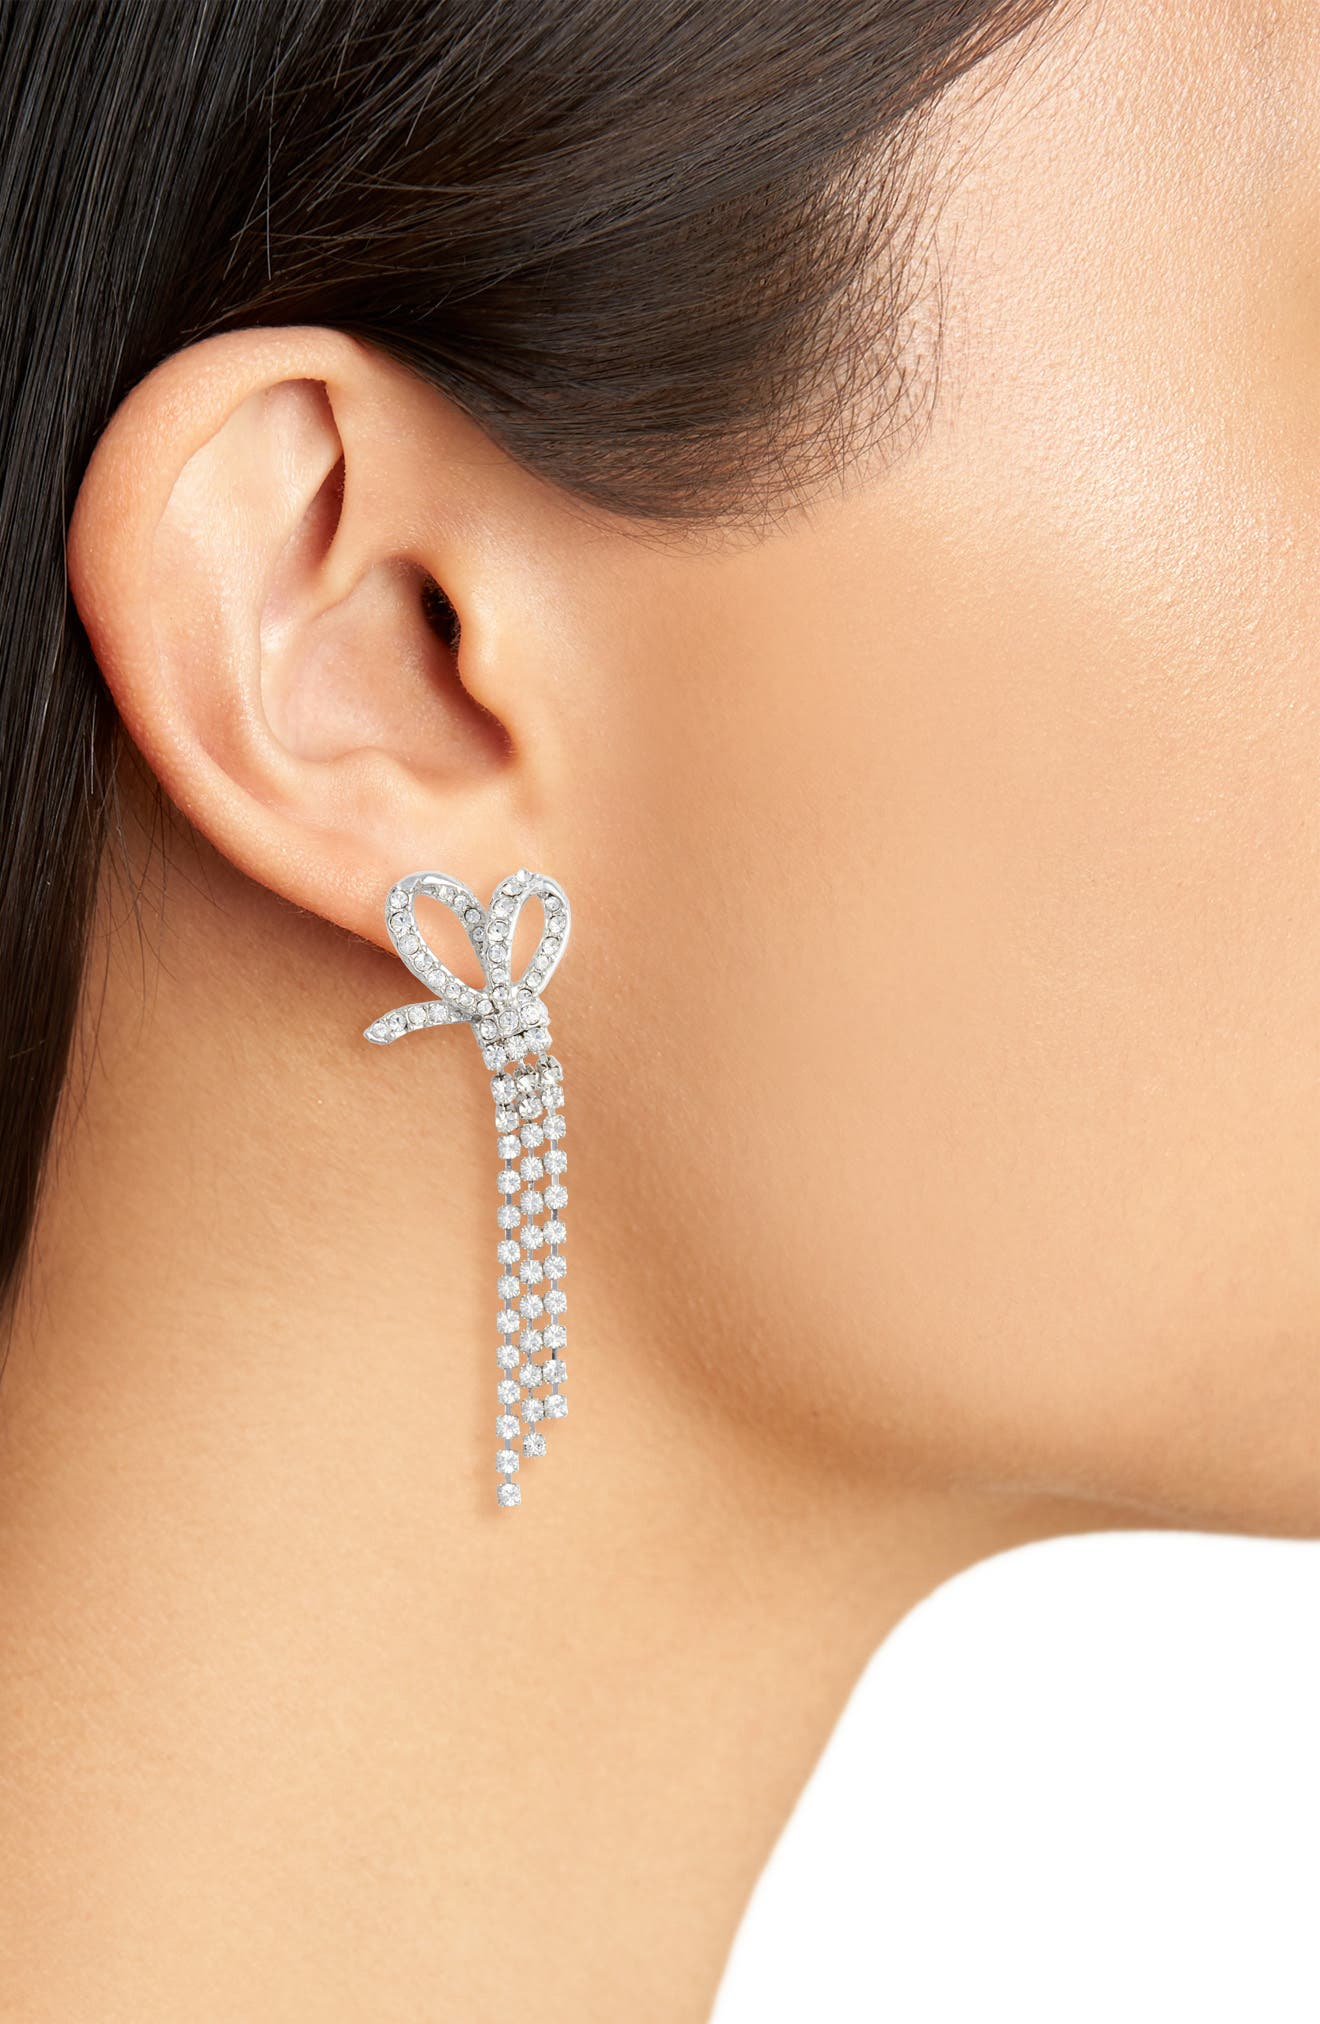 Drop Earrings,                             Alternate thumbnail 2, color,                             040